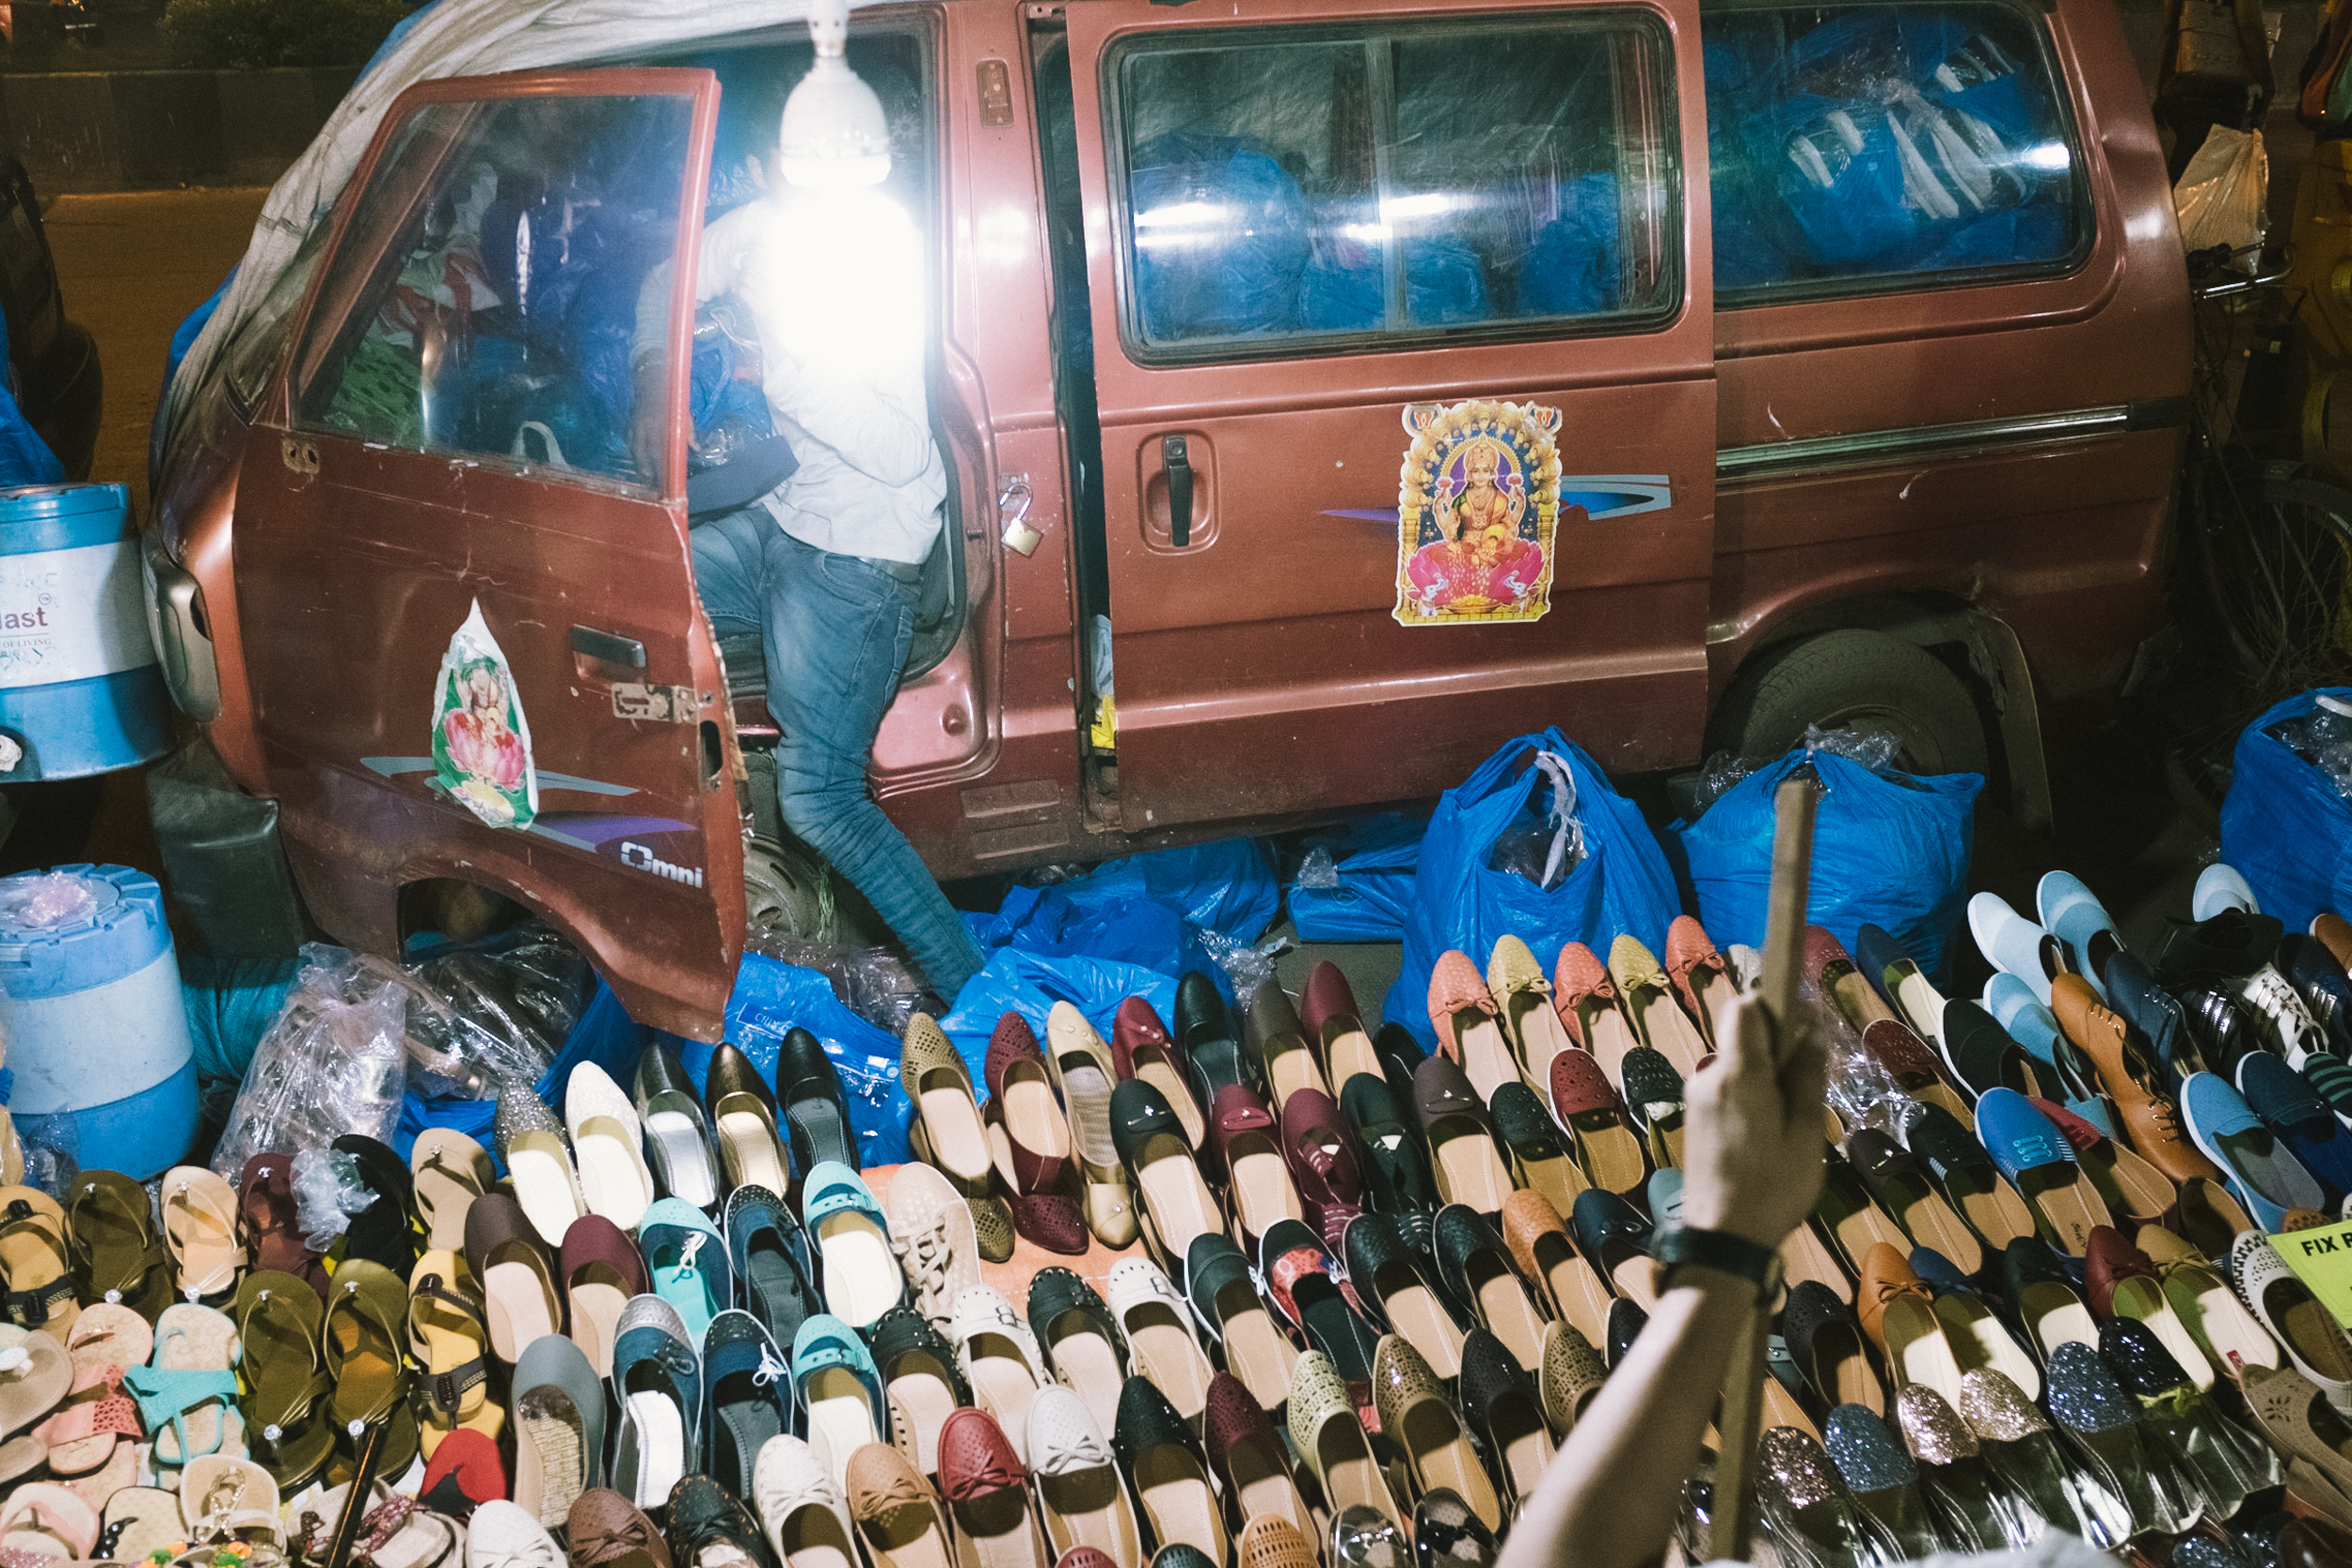 Lot 598 Shoes Attack - Photograph